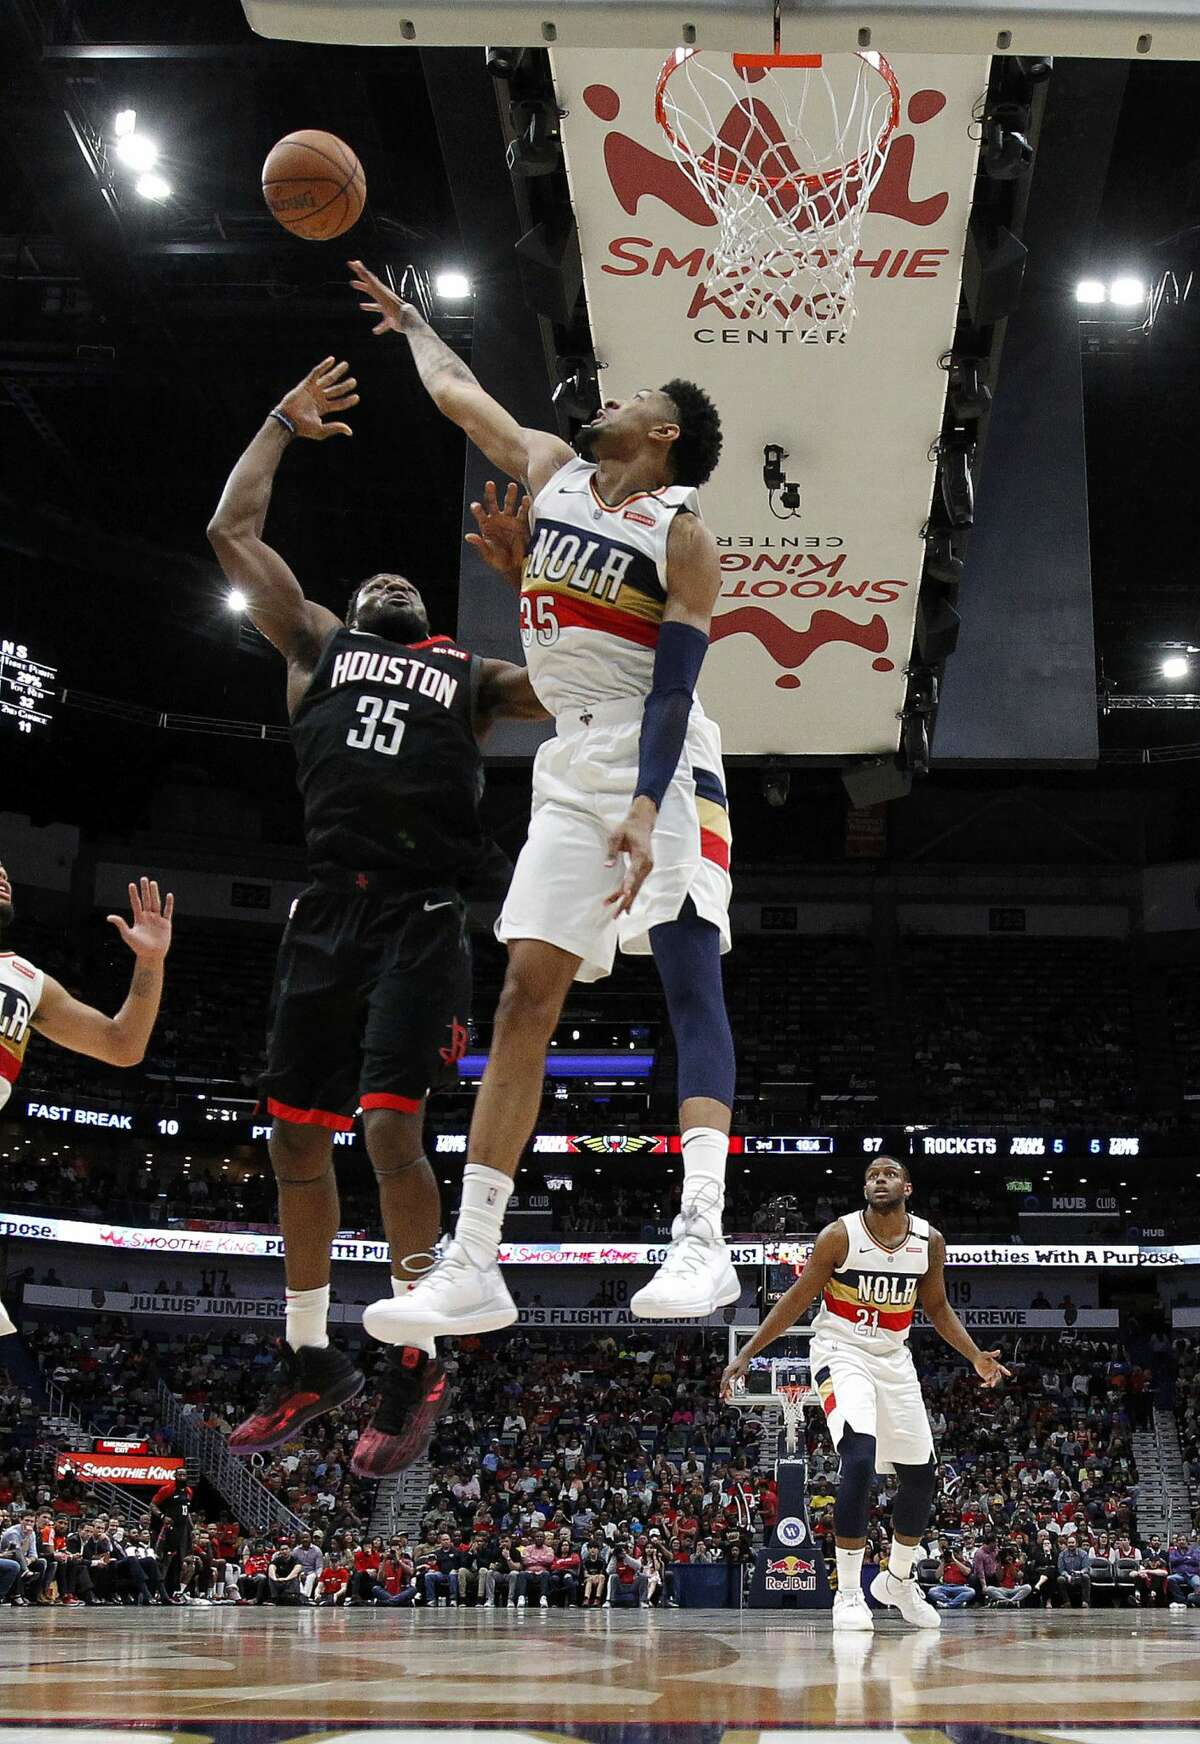 New Orleans Pelicans forward Christian Wood (35) reaches for the ball in front of Houston Rockets forward Kenneth Faried (35) during the second half of an NBA basketball game in New Orleans, Sunday, March 24, 2019. The Rockets won 113-90. (AP Photo/Tyler Kaufman)